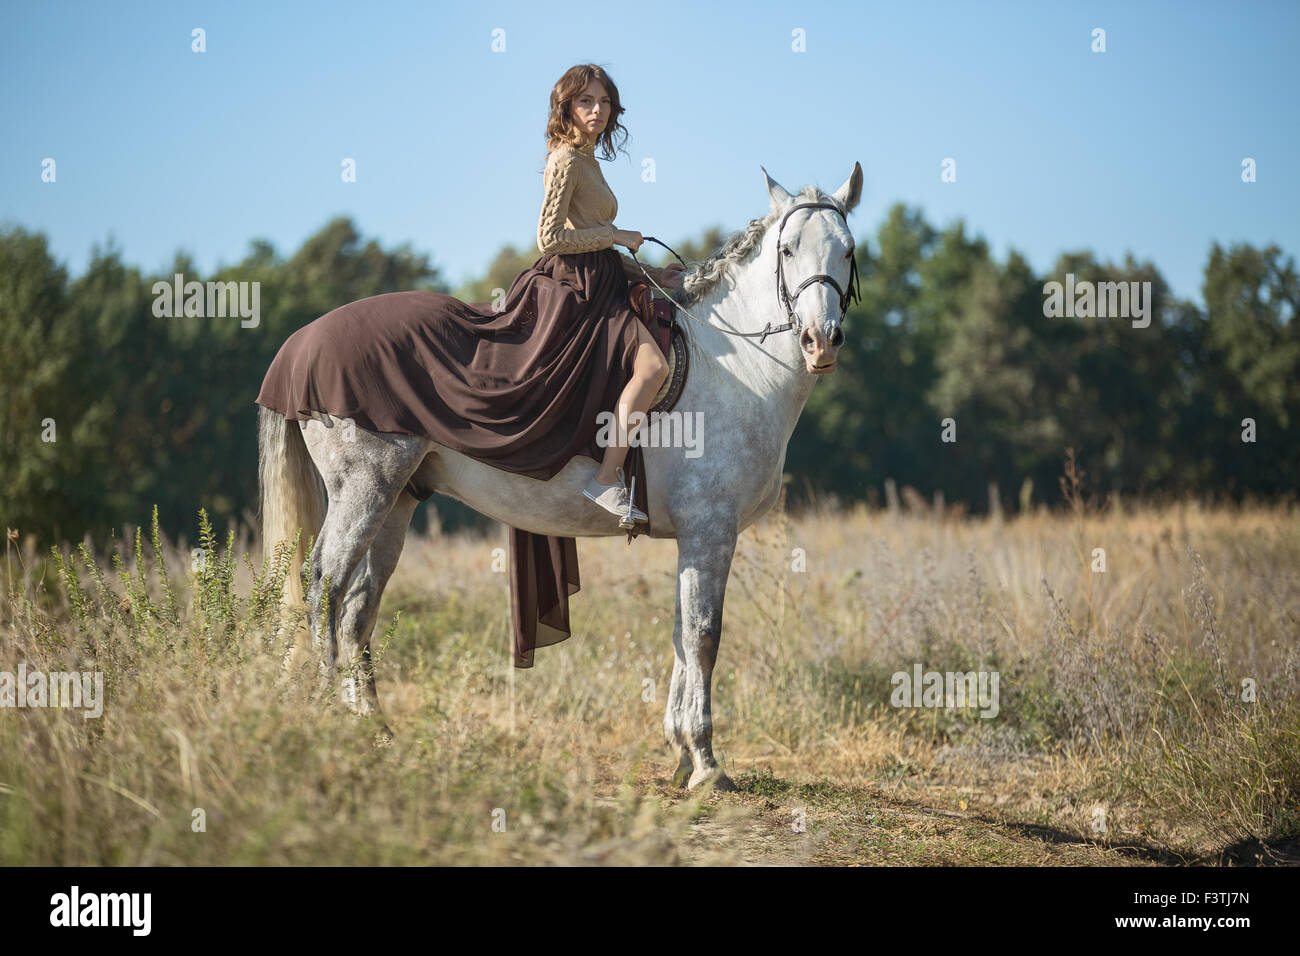 Beautiful girl riding - Stock Image